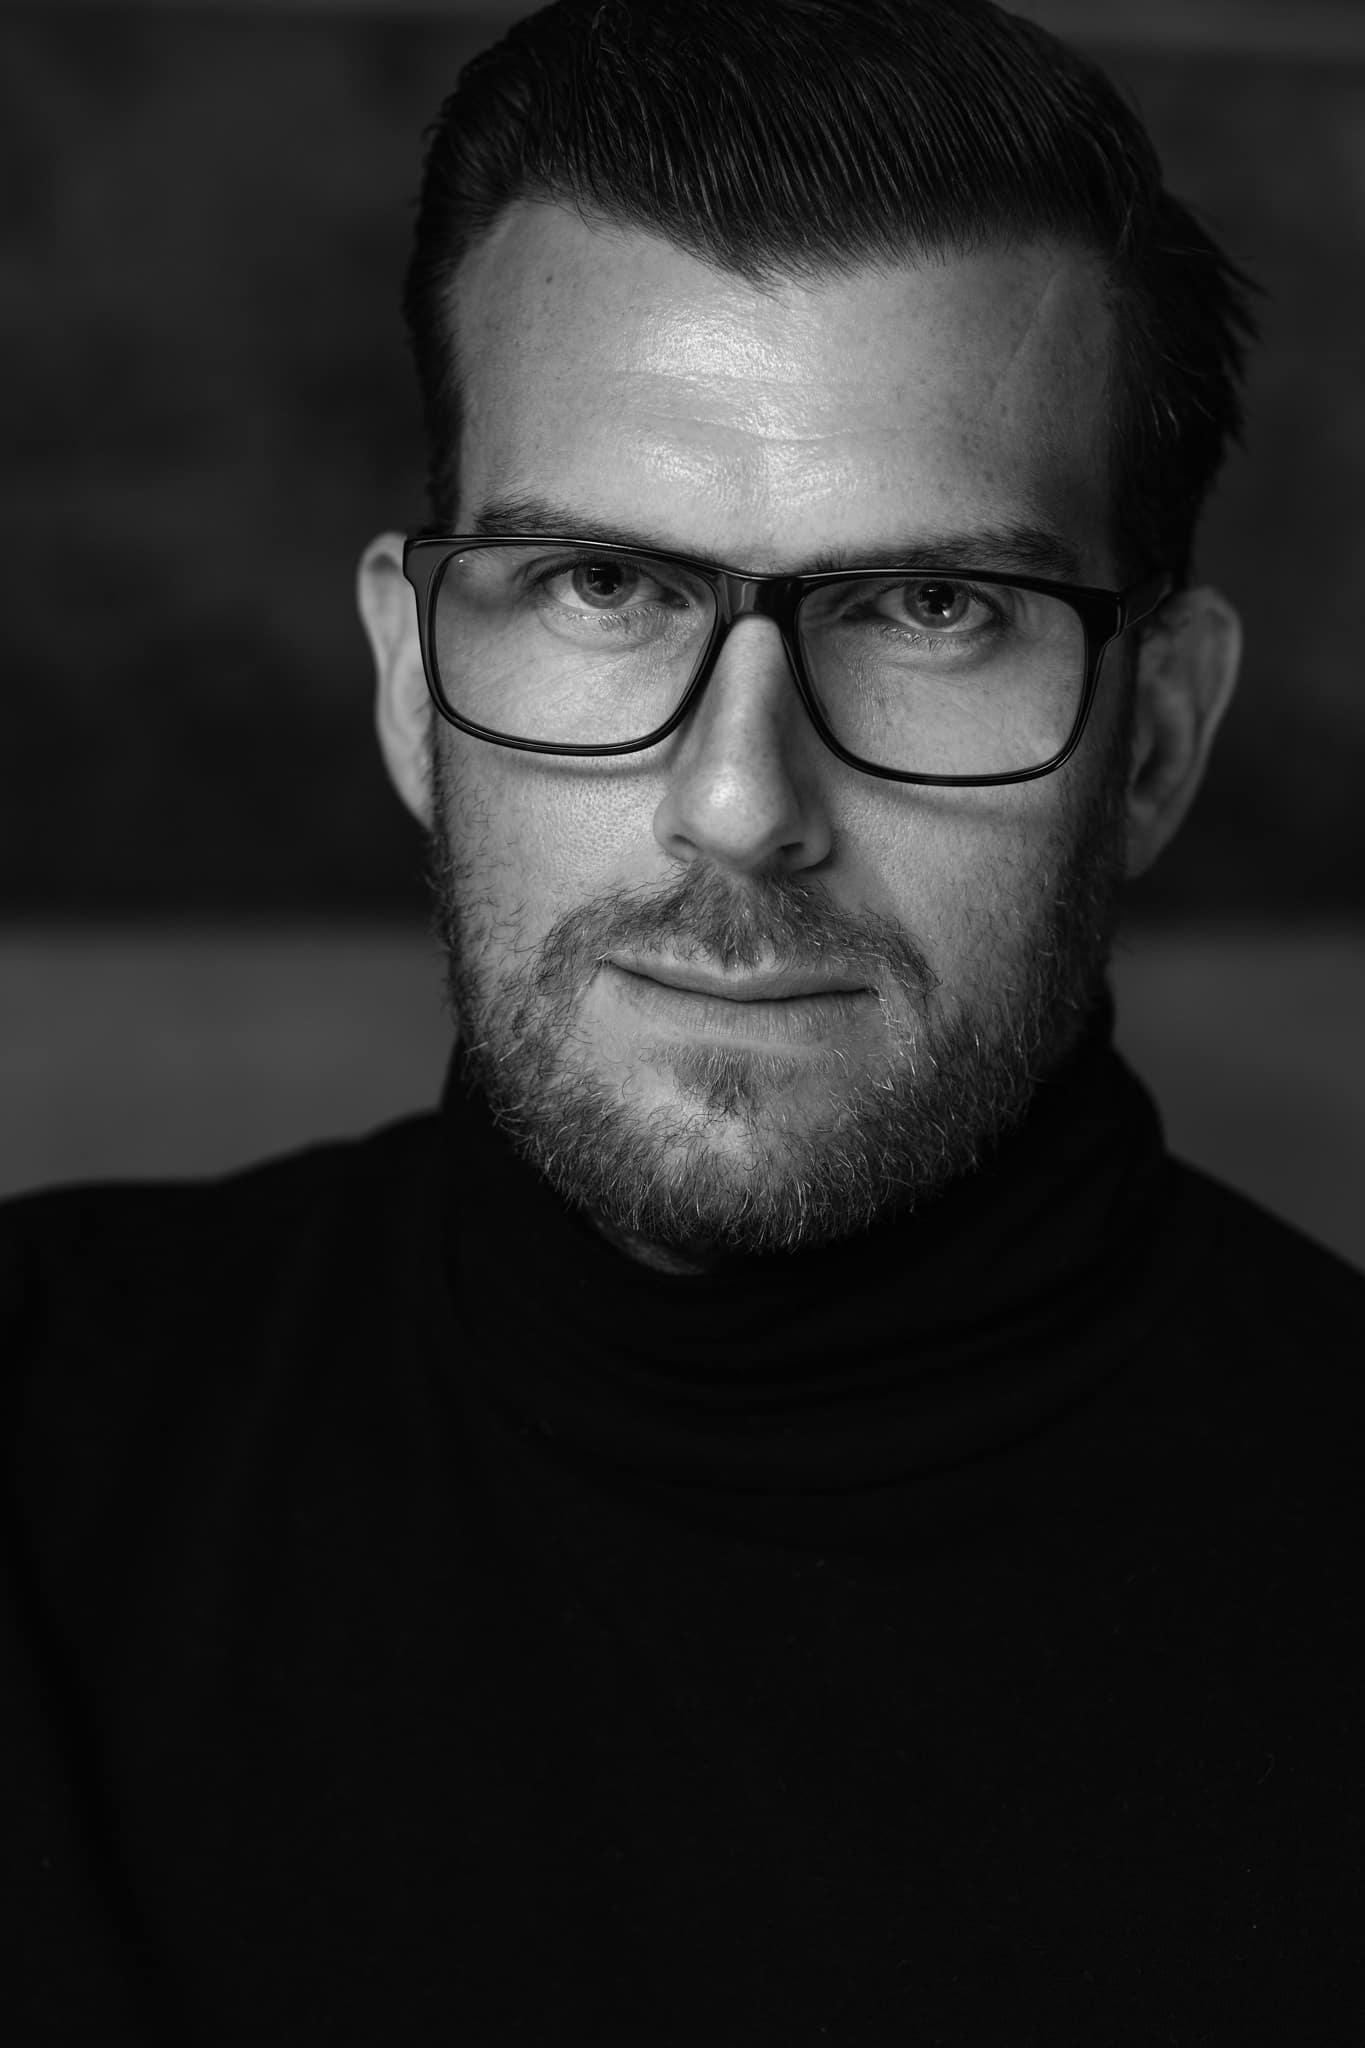 Nick Morris - Architectural Graduate at Respond Architects